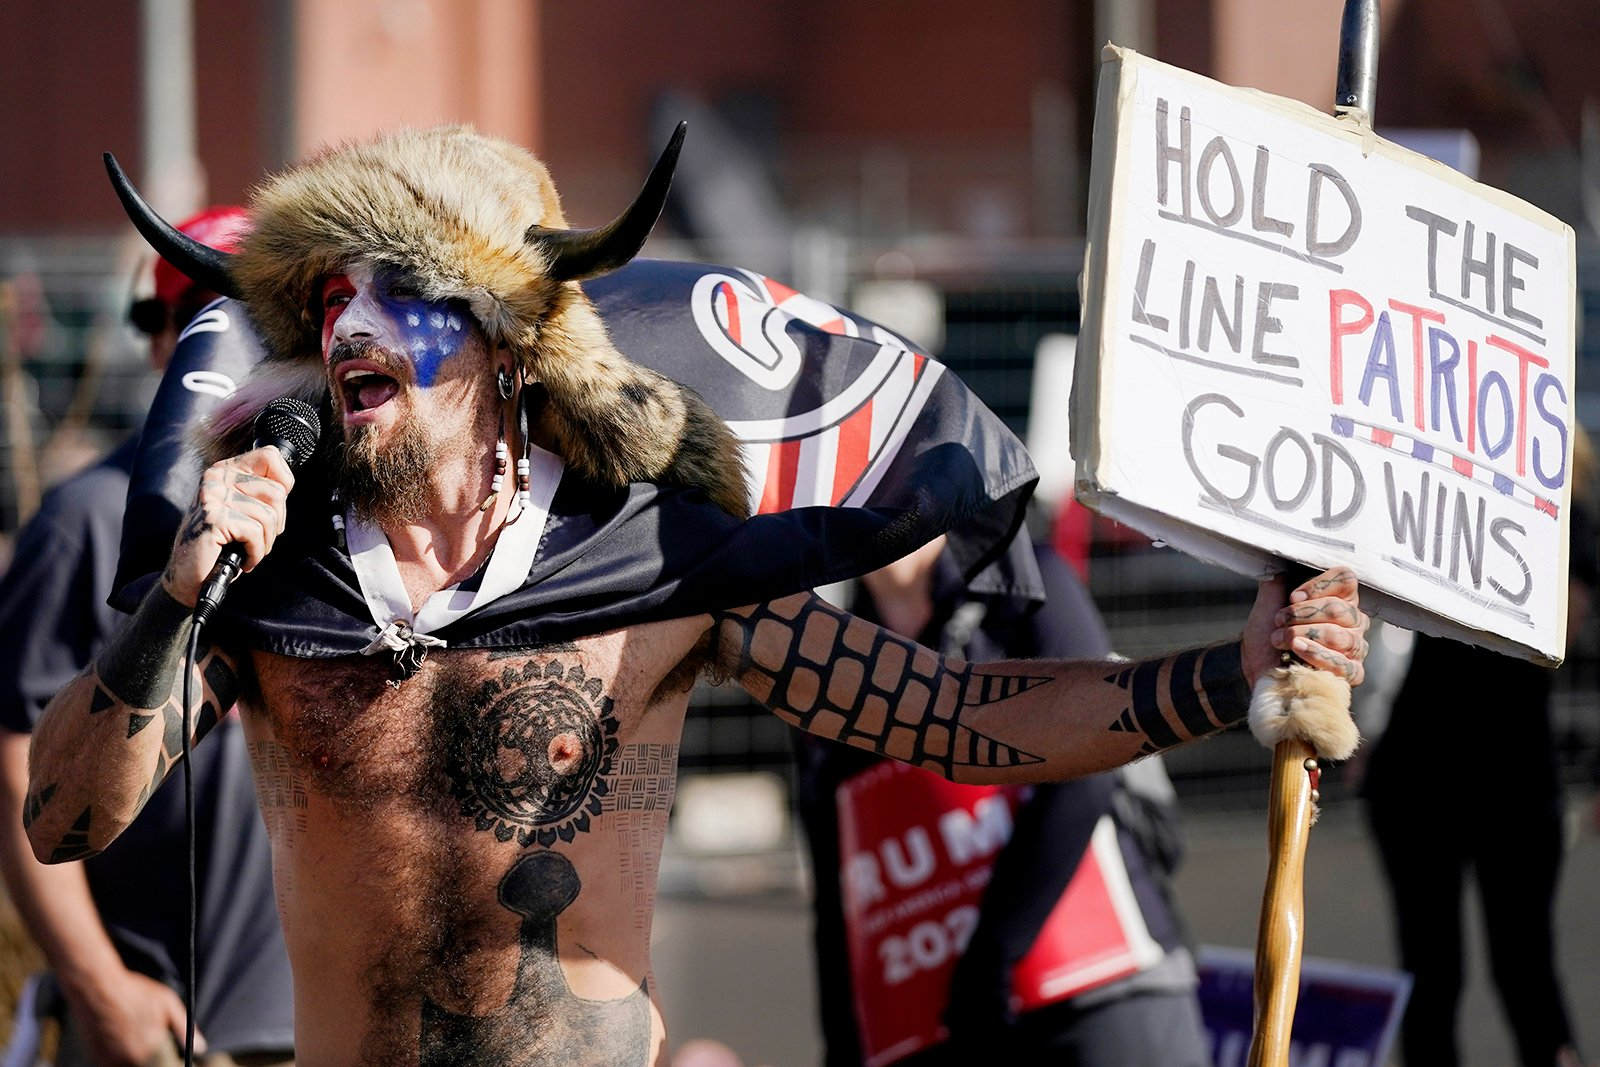 Jake Angeli, a supporter of President Donald Trump, speaks at a rally outside the Maricopa County Recorder's Office, Saturday, Nov. 7, 2020, in Phoenix. (AP Photo/Ross D. Franklin)